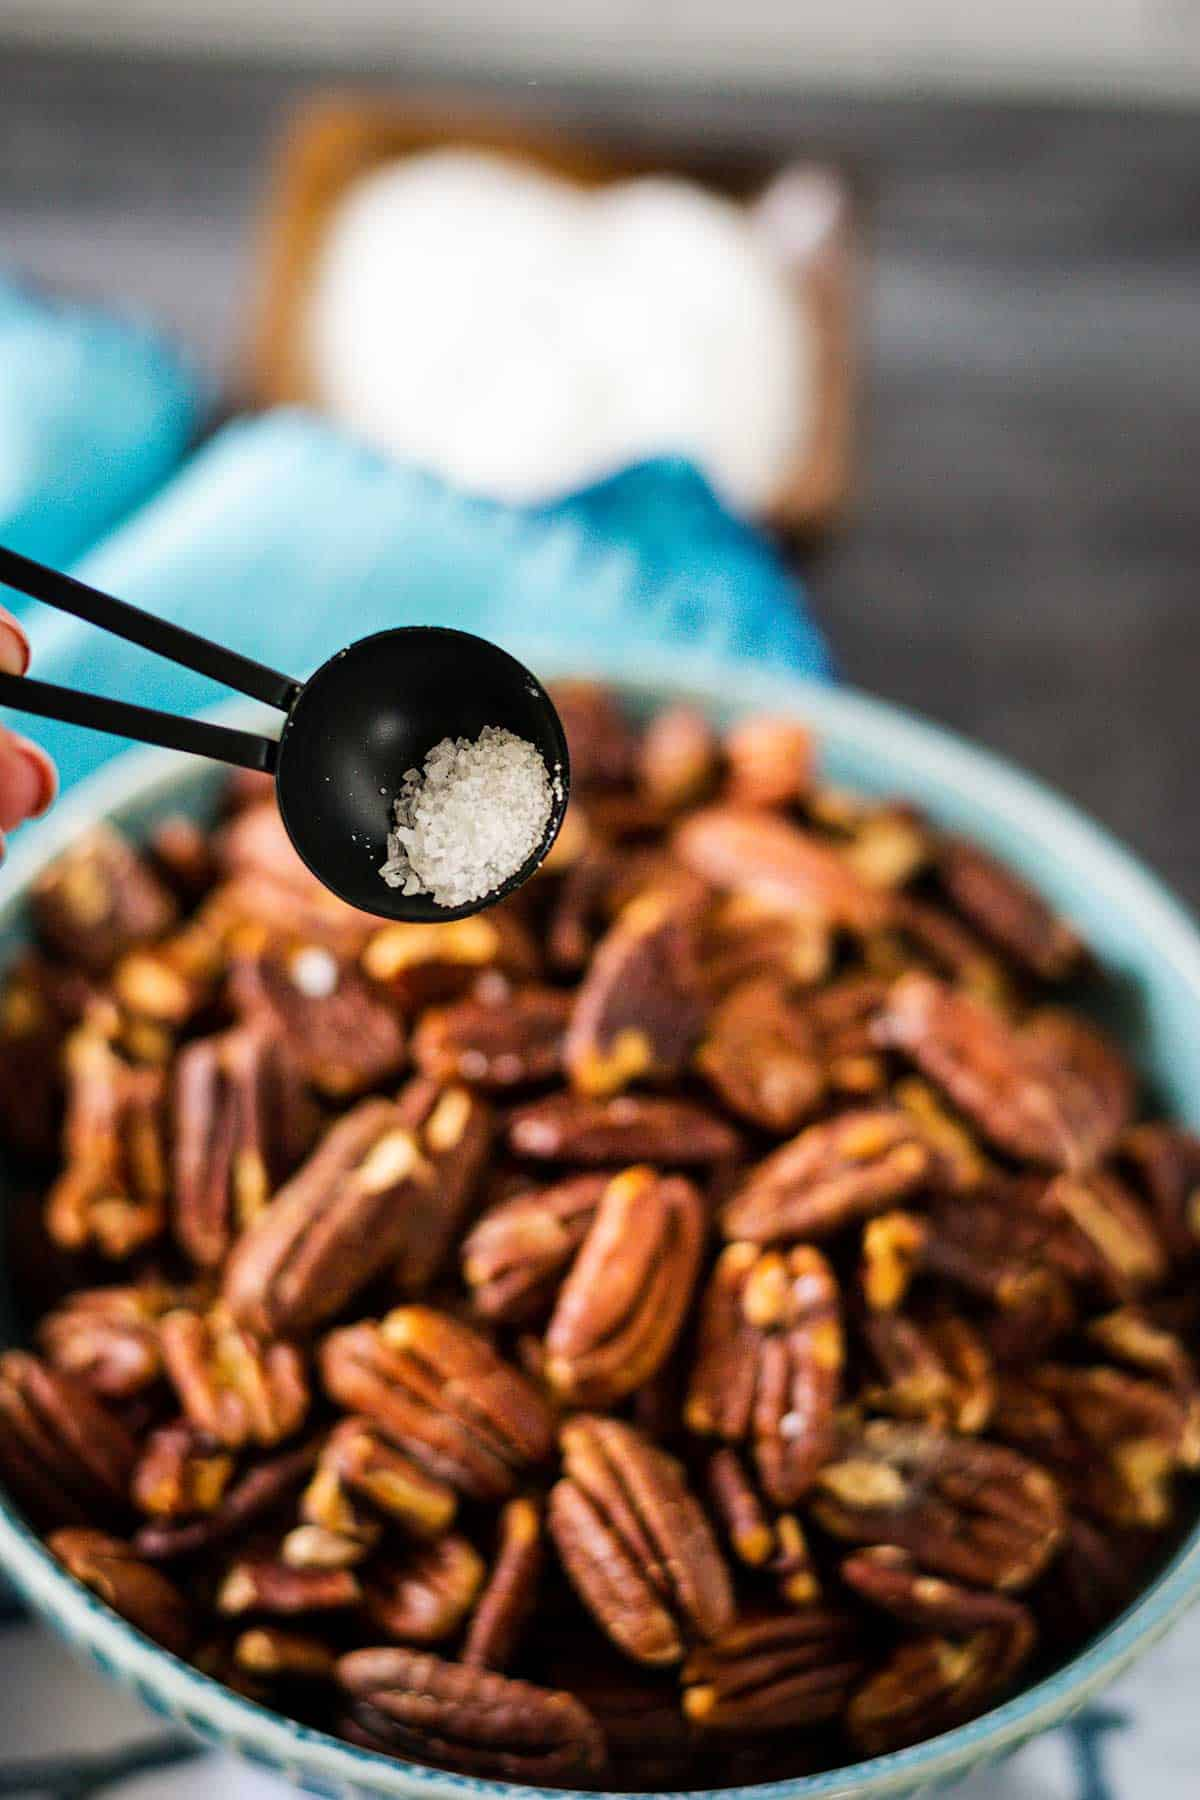 Toasted pecans in a blue bowl being topped with salt.